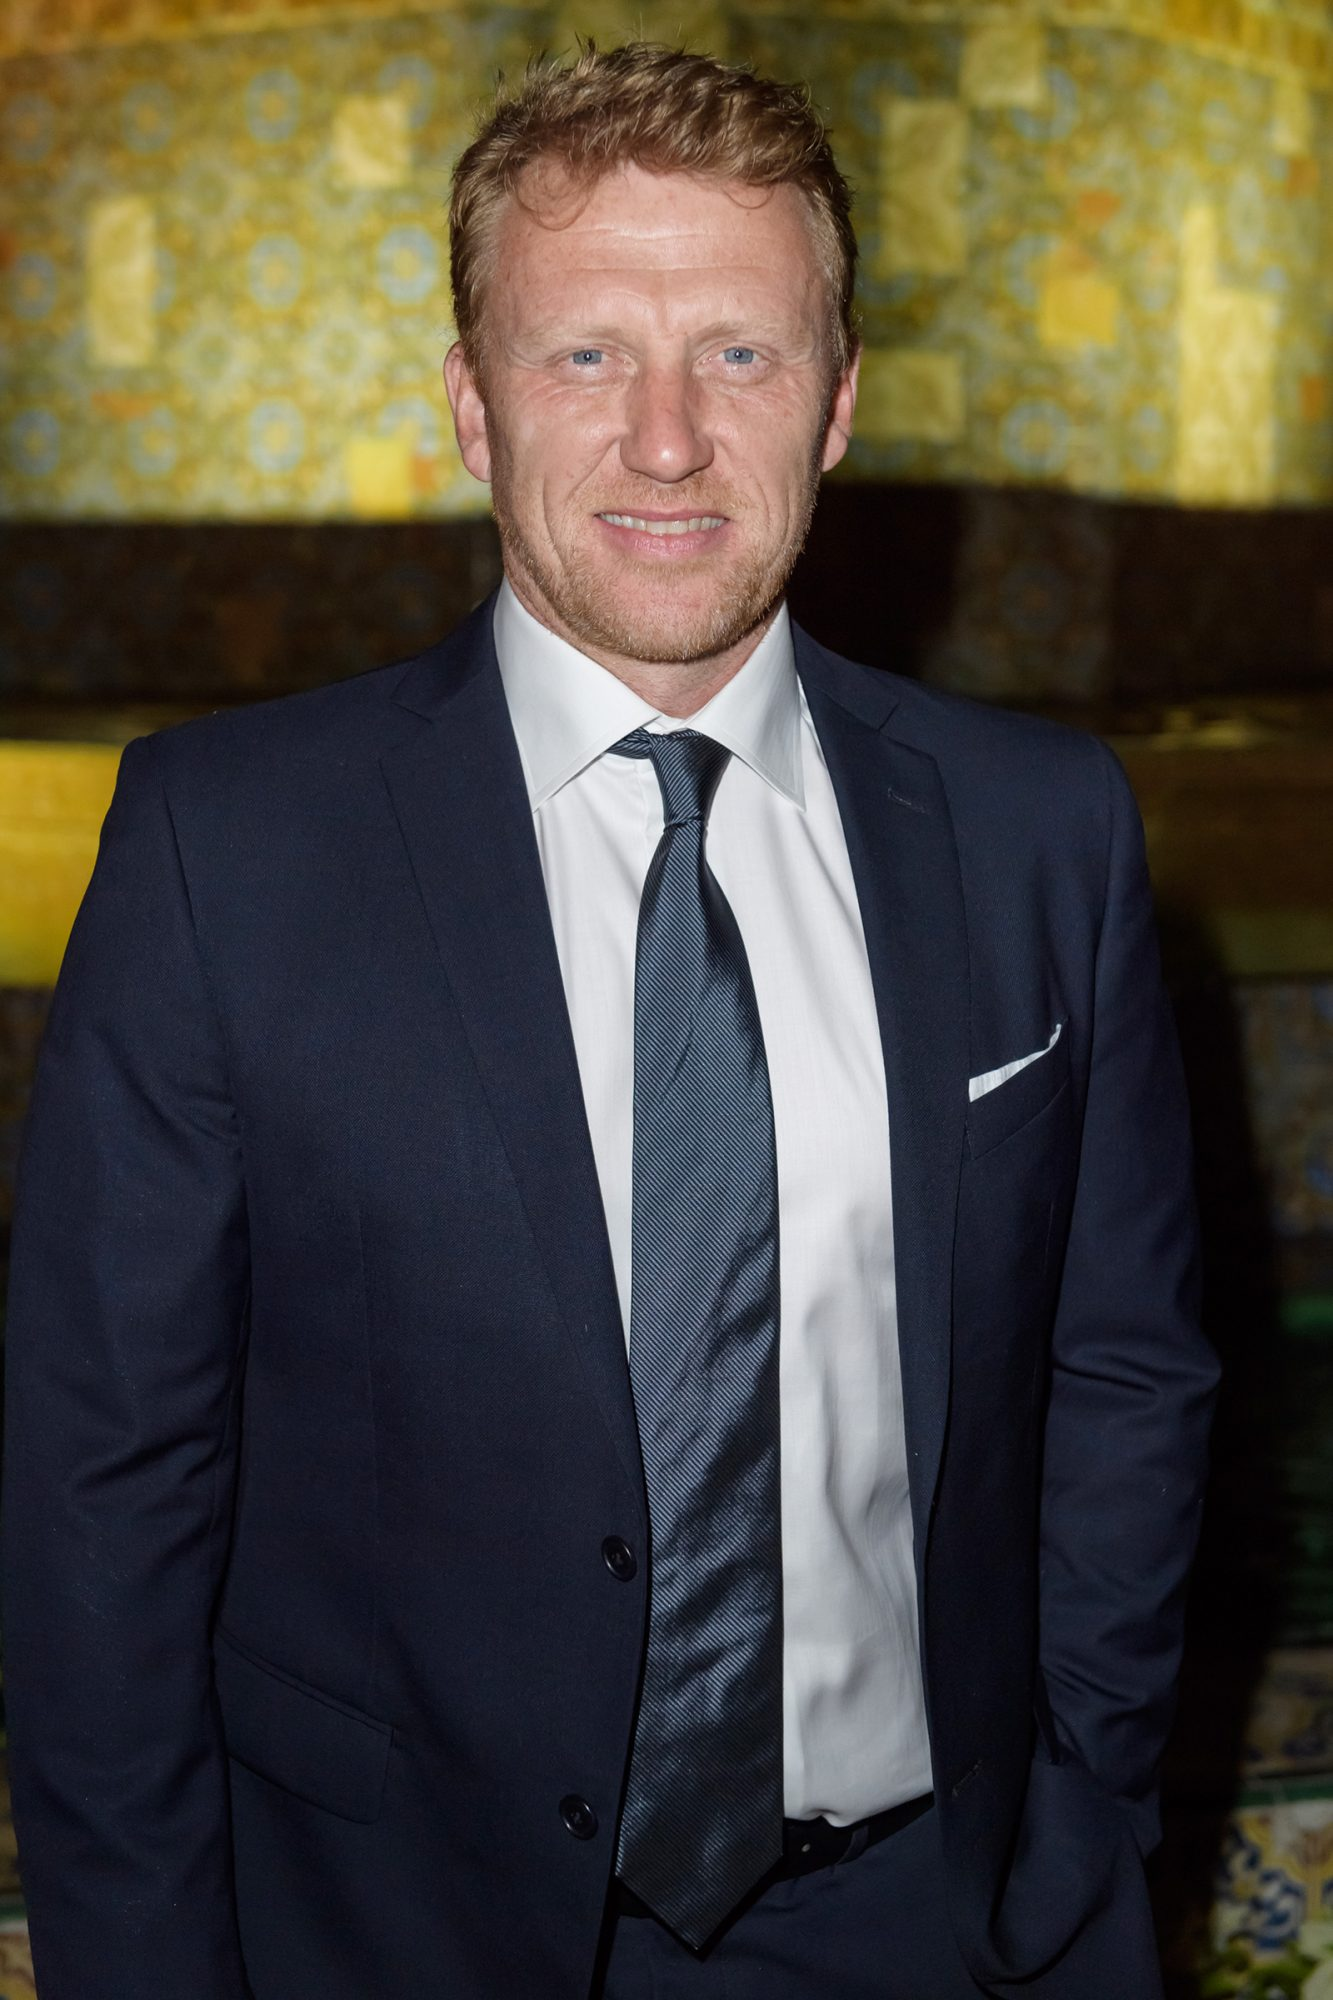 Kevin McKidd attends the 30TH Annual Chris Evert Pro-Celebrity Tennis Classic Gala & Dinner at Boca Raton Resort & Club on November 23, 2019 in Boca Raton, Florida